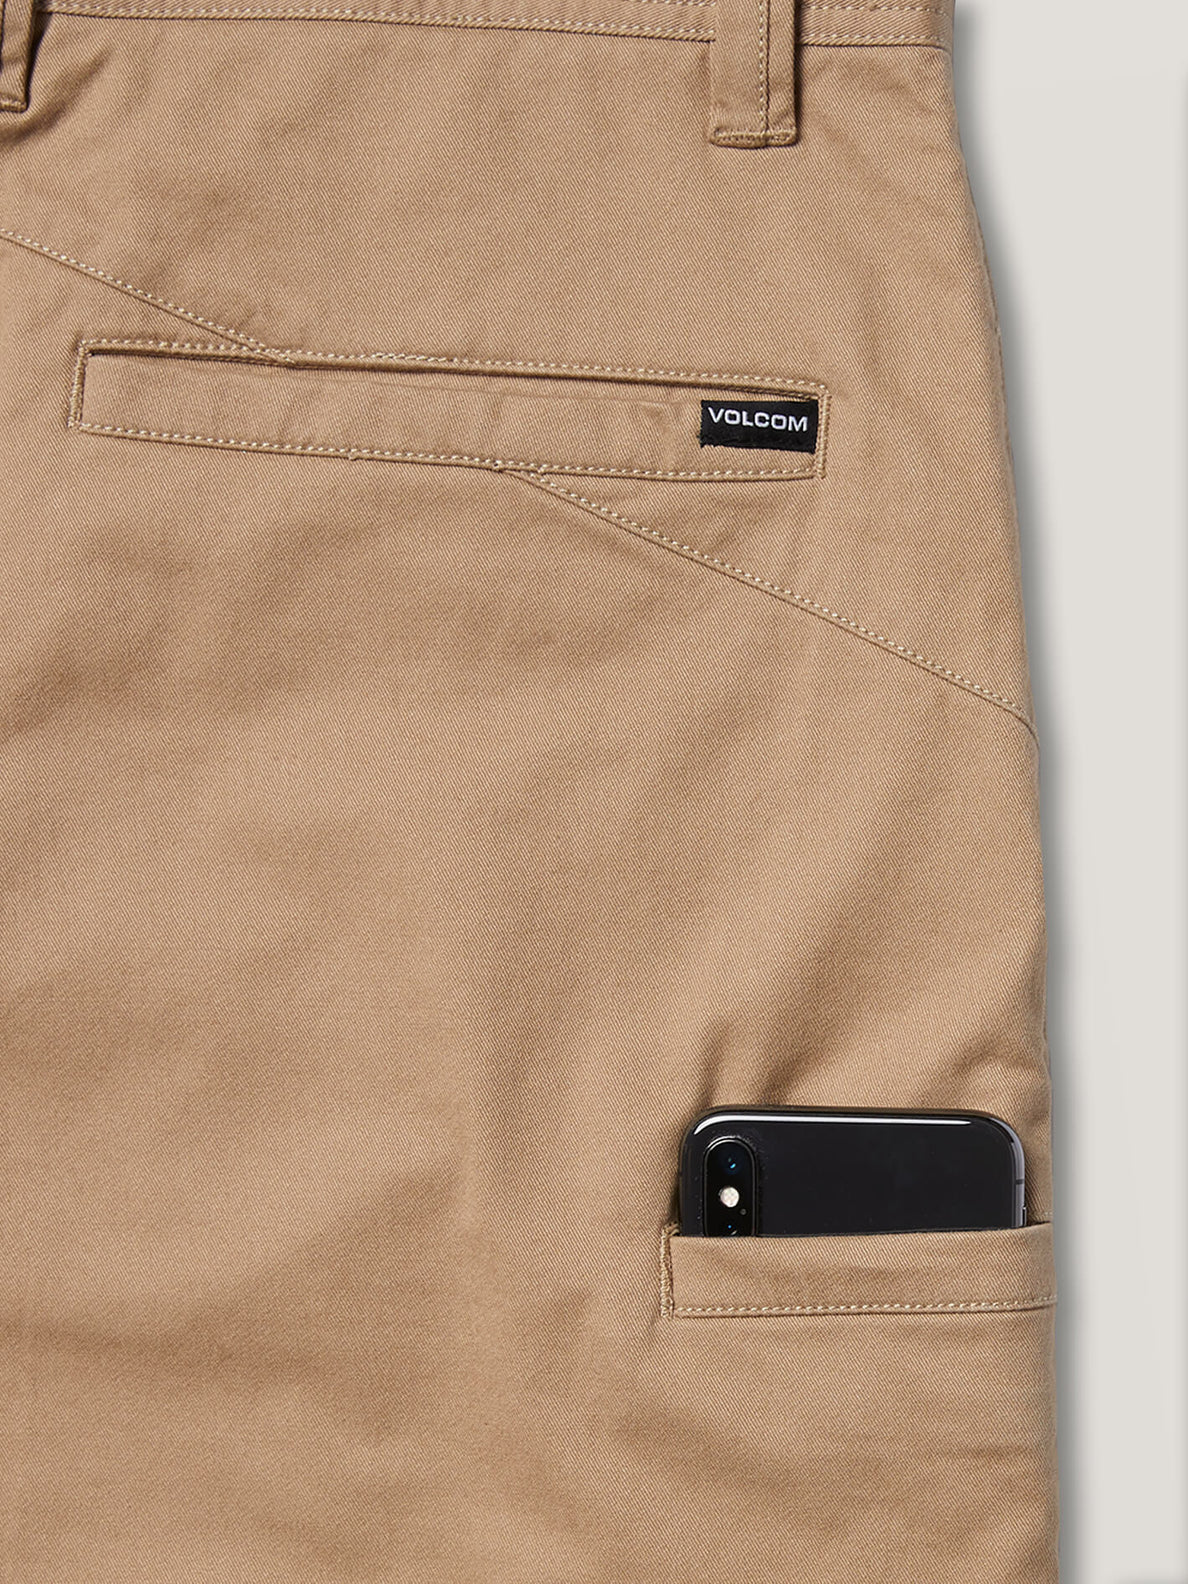 Frickin Down-low Shorts W/ Cell Phone Pocket In Khaki, Second Alternate View